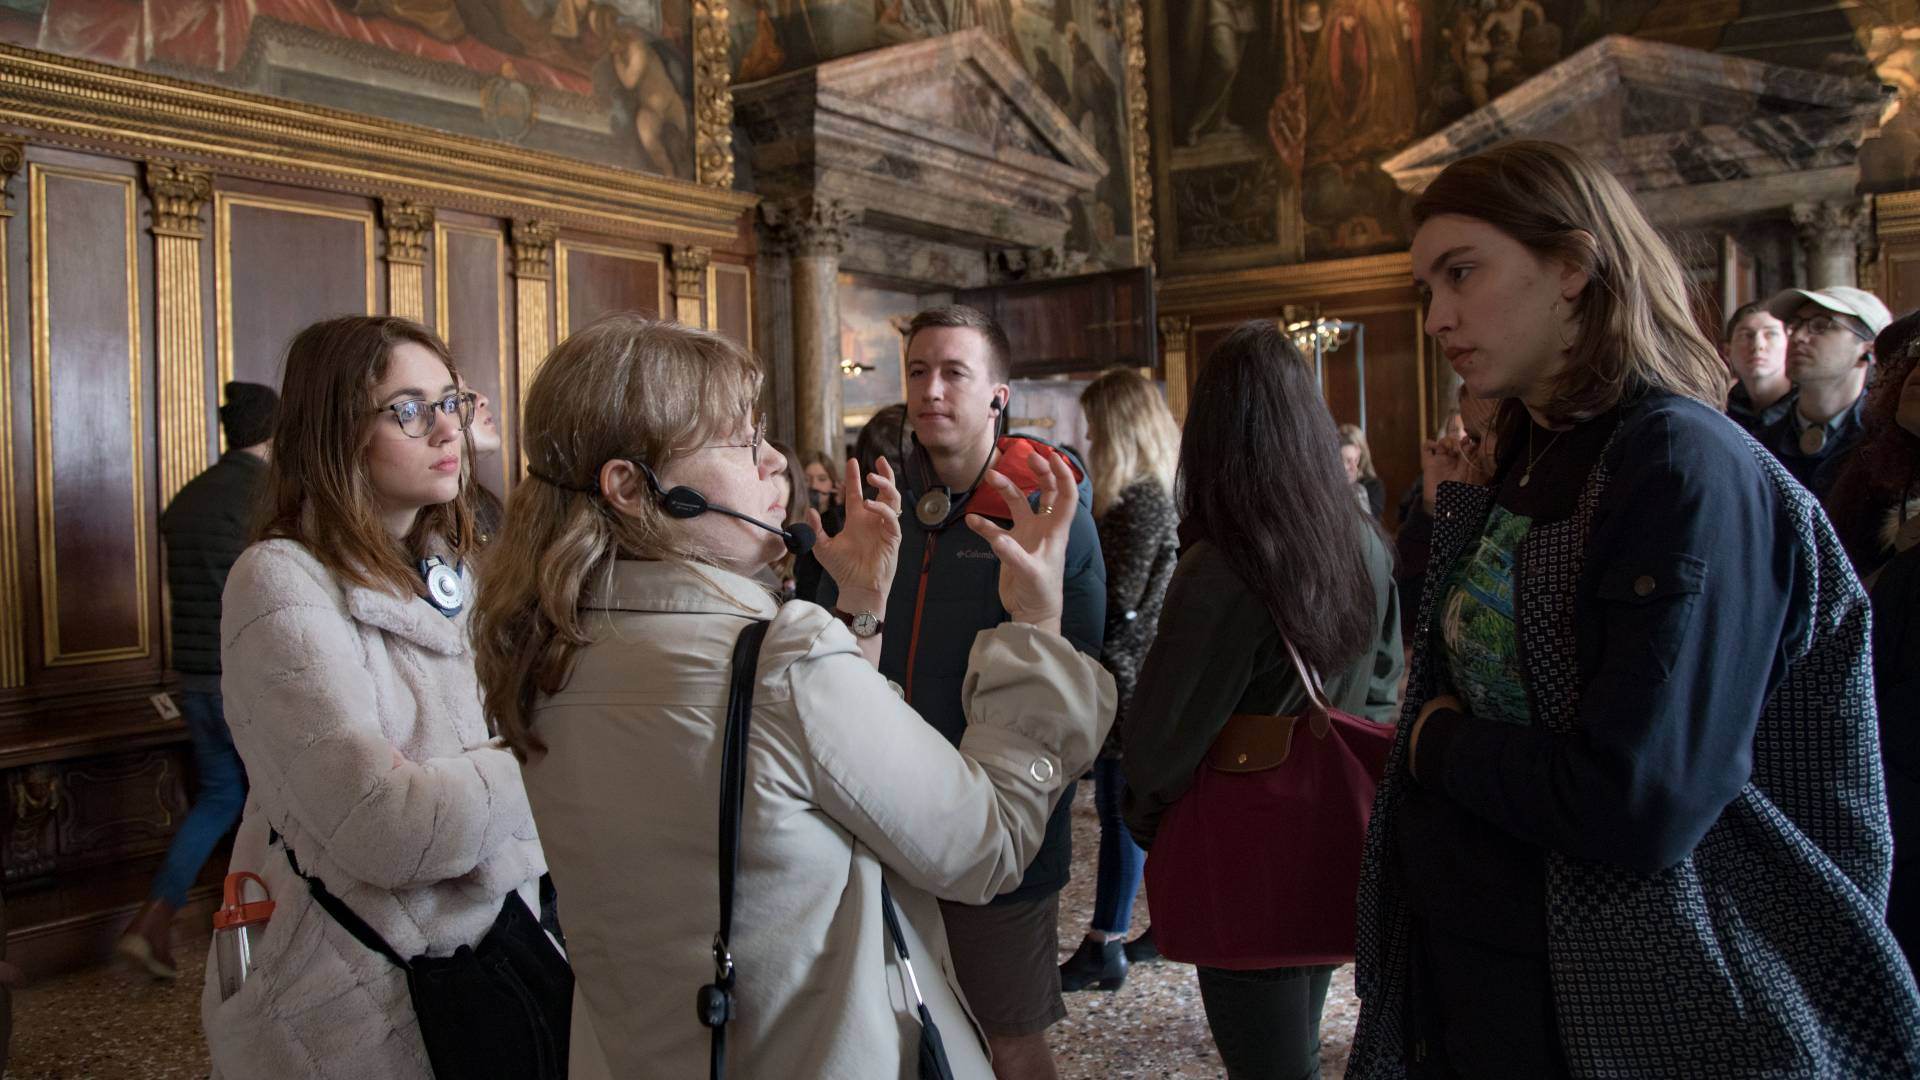 Tour guide with students inside the Doge's Palace in Venice